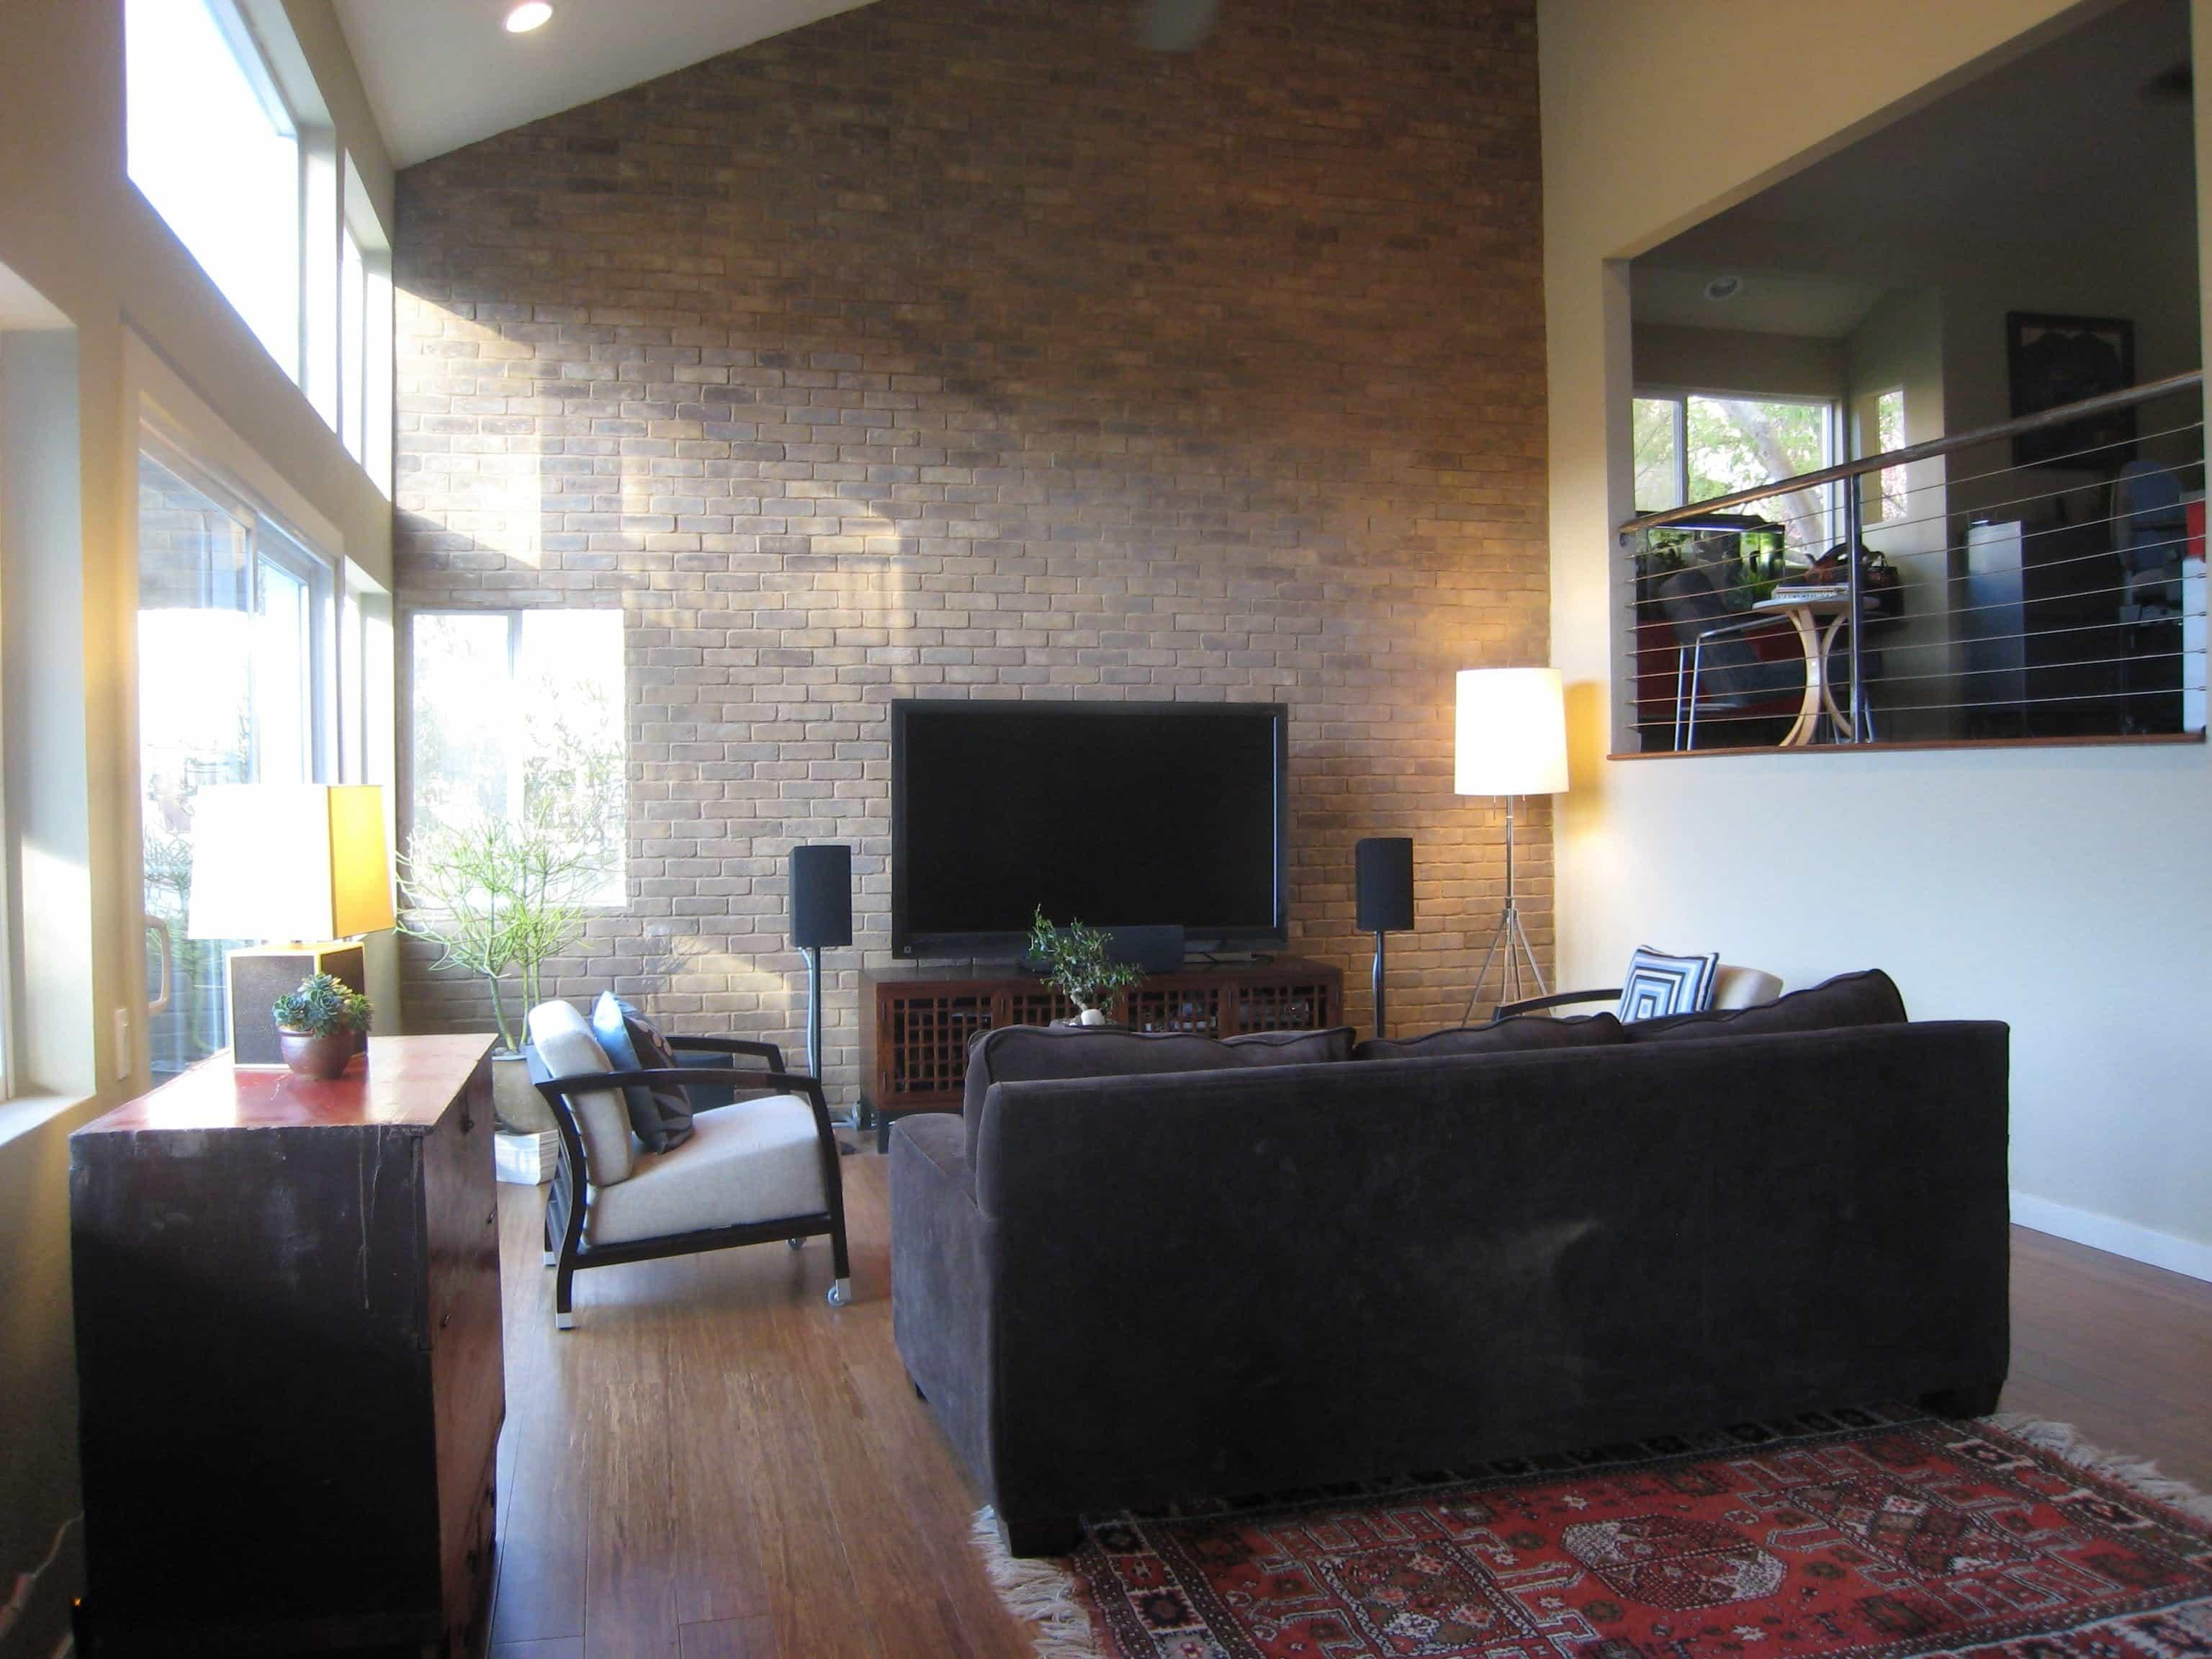 Decorative Brick Wall Design Your Interior